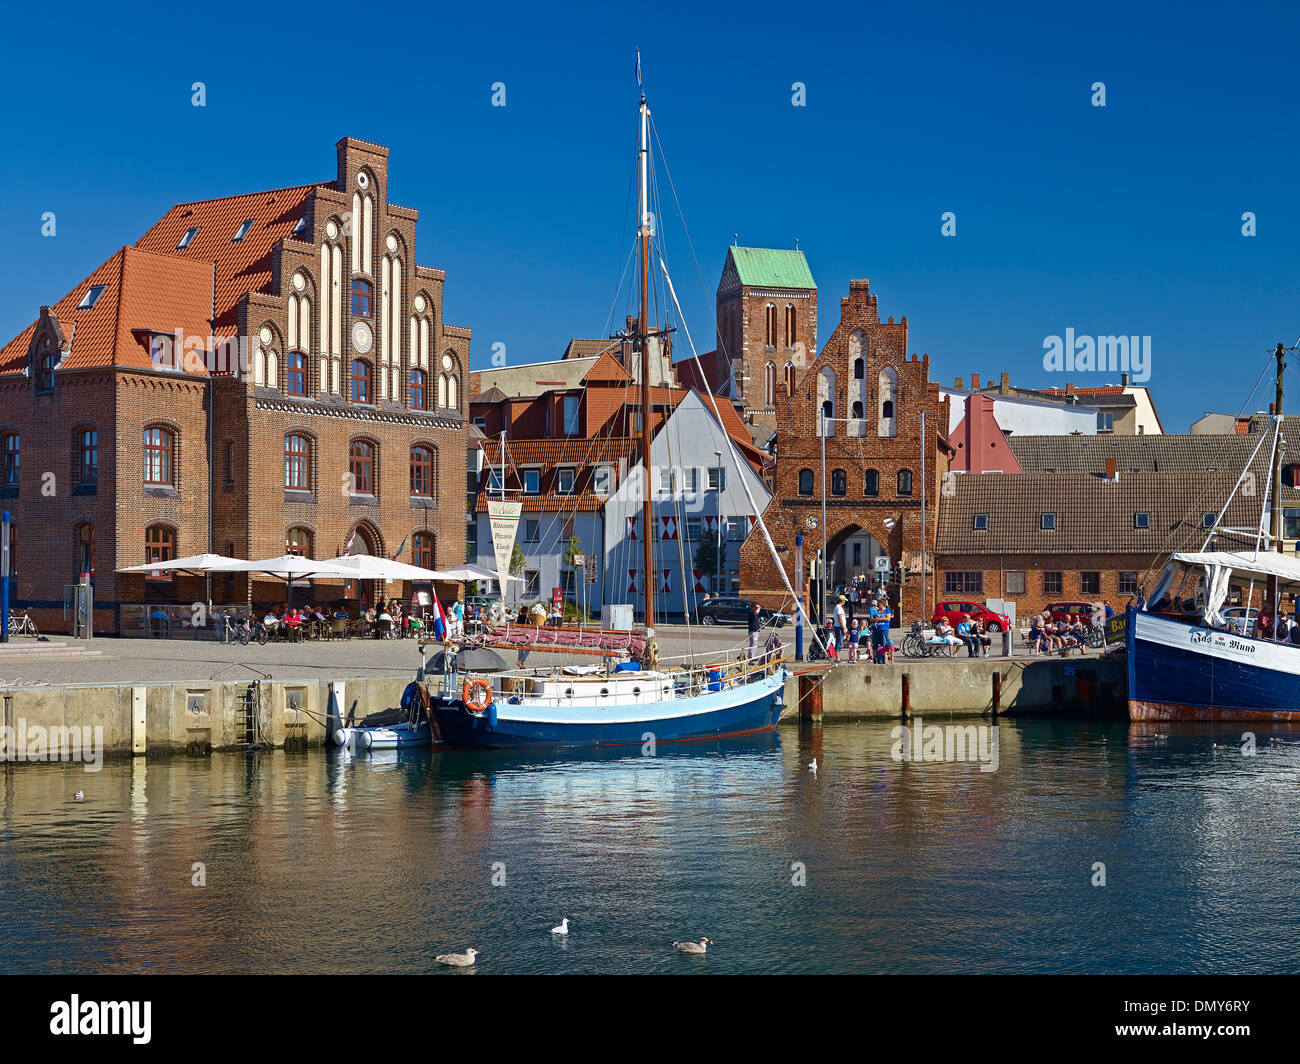 Old Harbour with Wassertor and Church of St. Nicholas, Wismar, Mecklenburg-Vorpommern, Germany Stock Photo